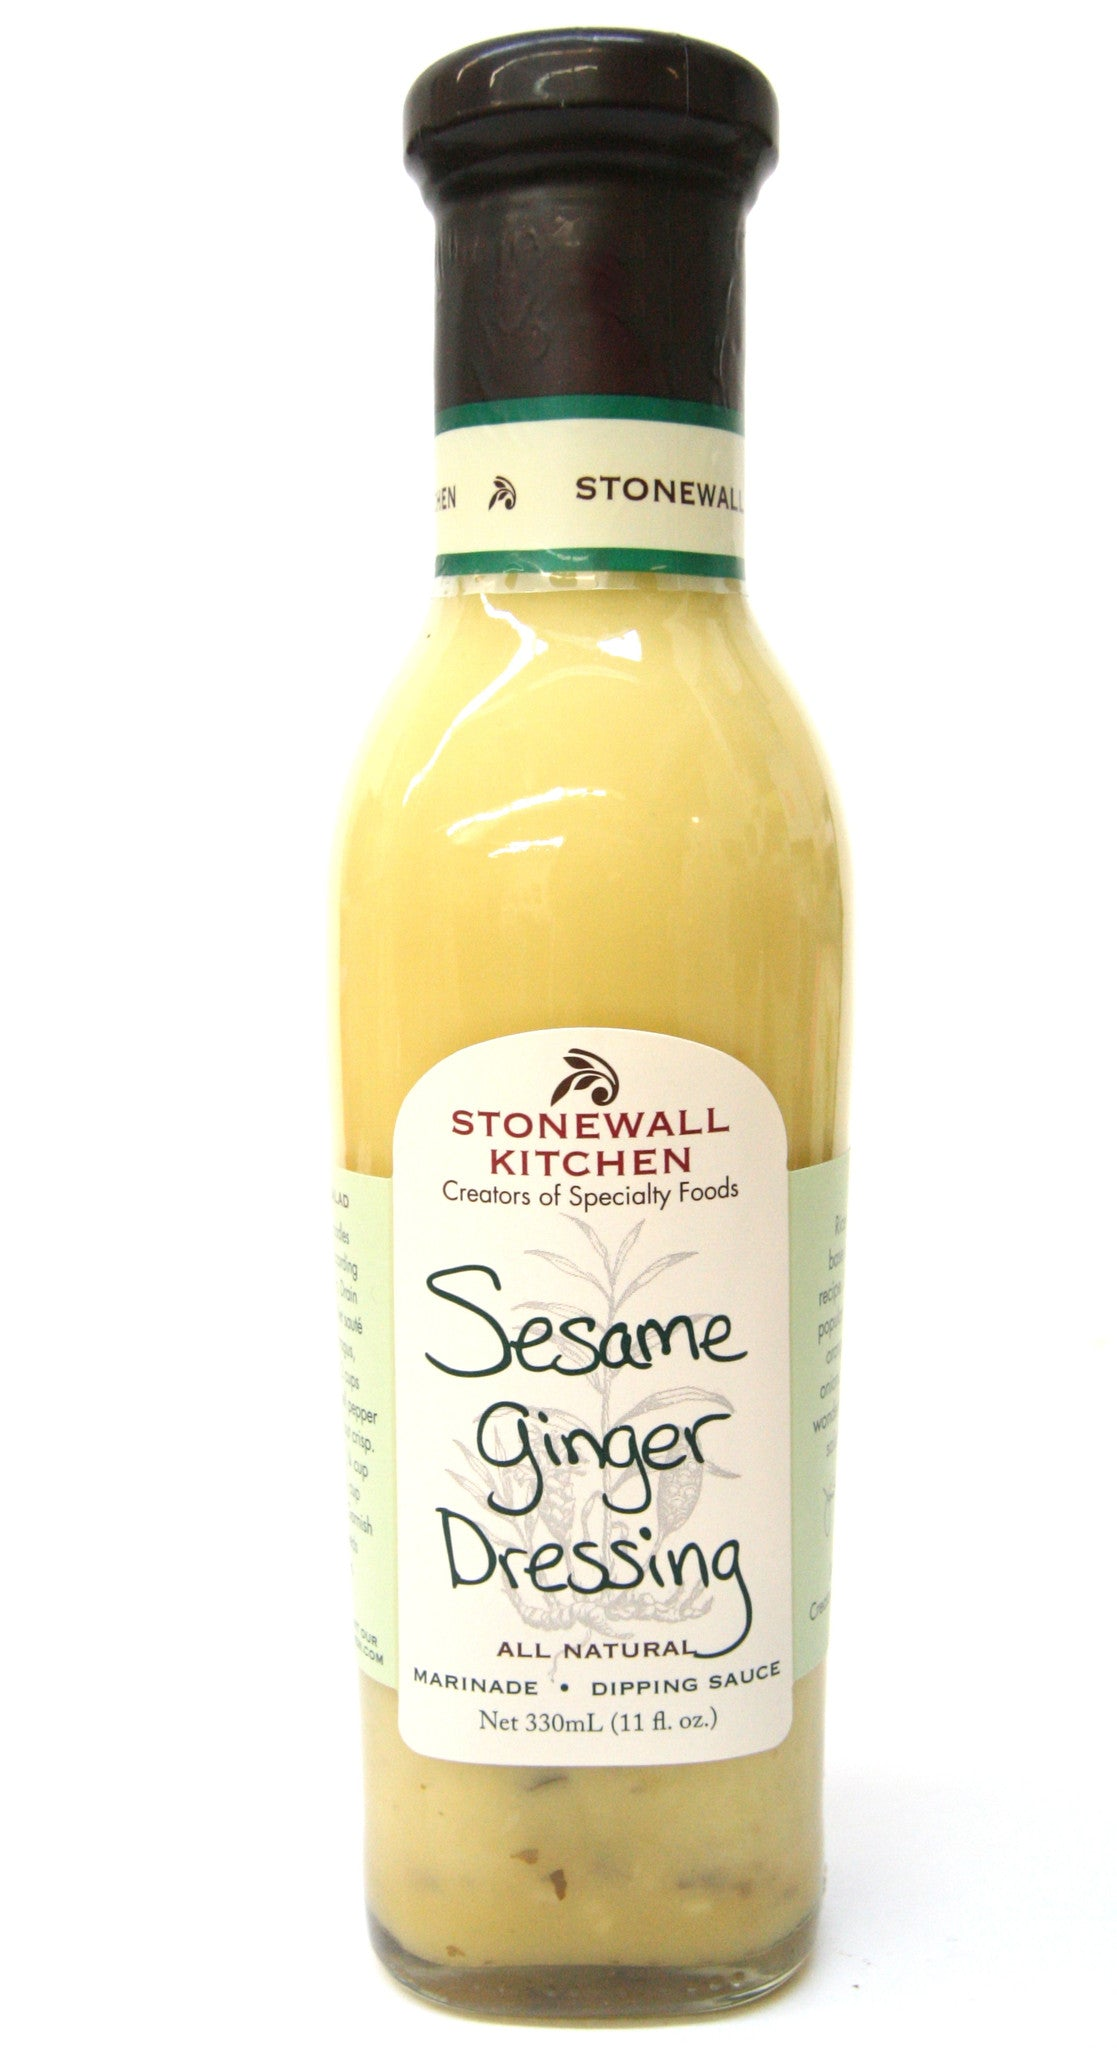 Stonewall Kitchen Sesame Ginger Dressing | countrymercantile